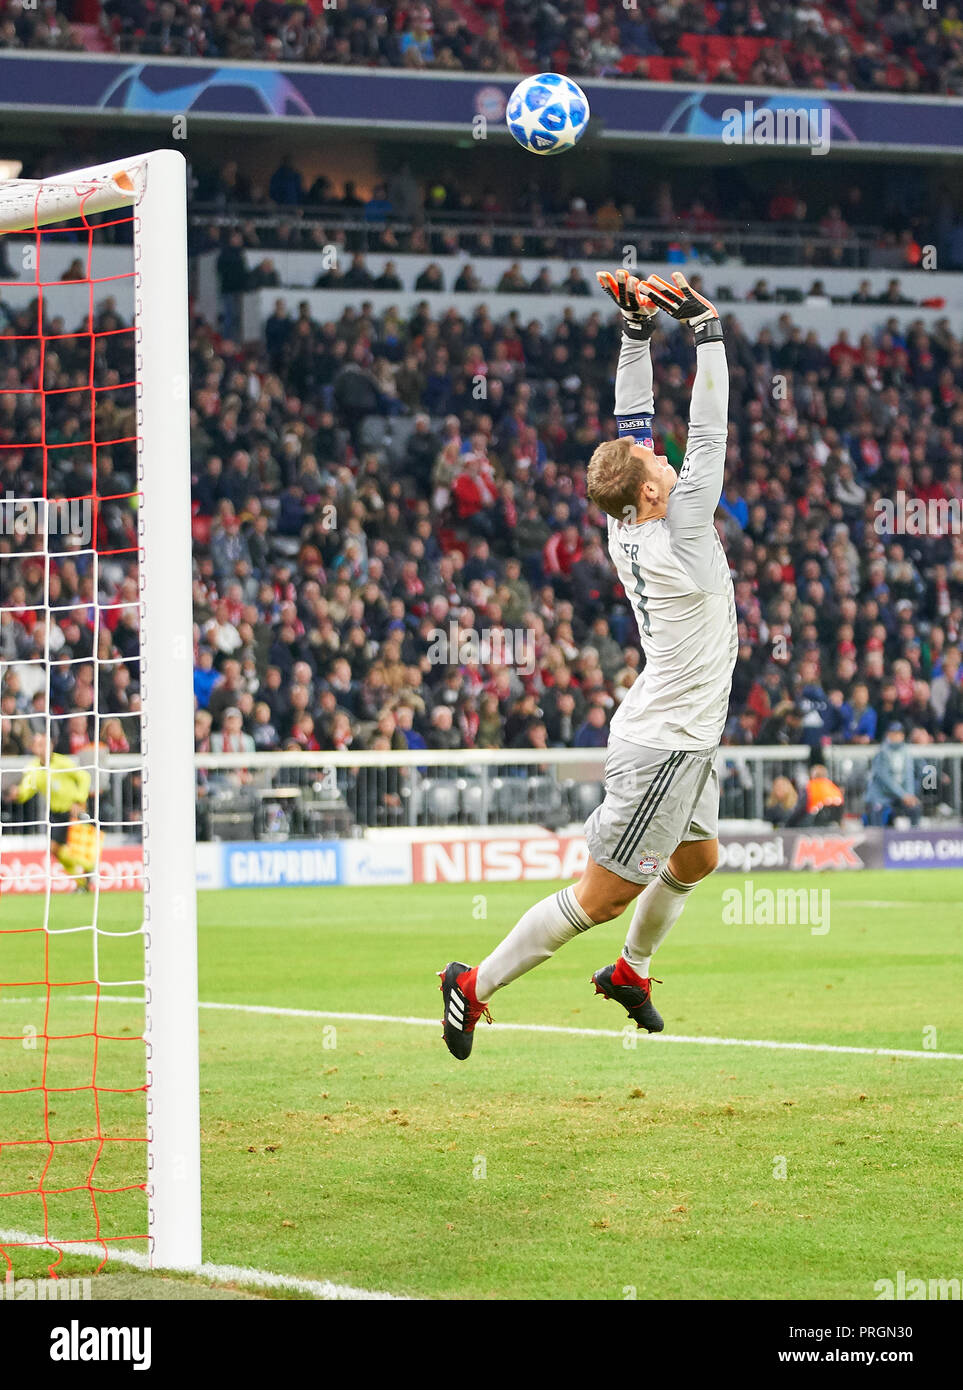 FC Bayern Soccer, Munich, October 02, 2018 Manuel NEUER, FCB 1 fights for  the ball, catches, catch, hold, action, frame, cut out, reaction, fist, ...